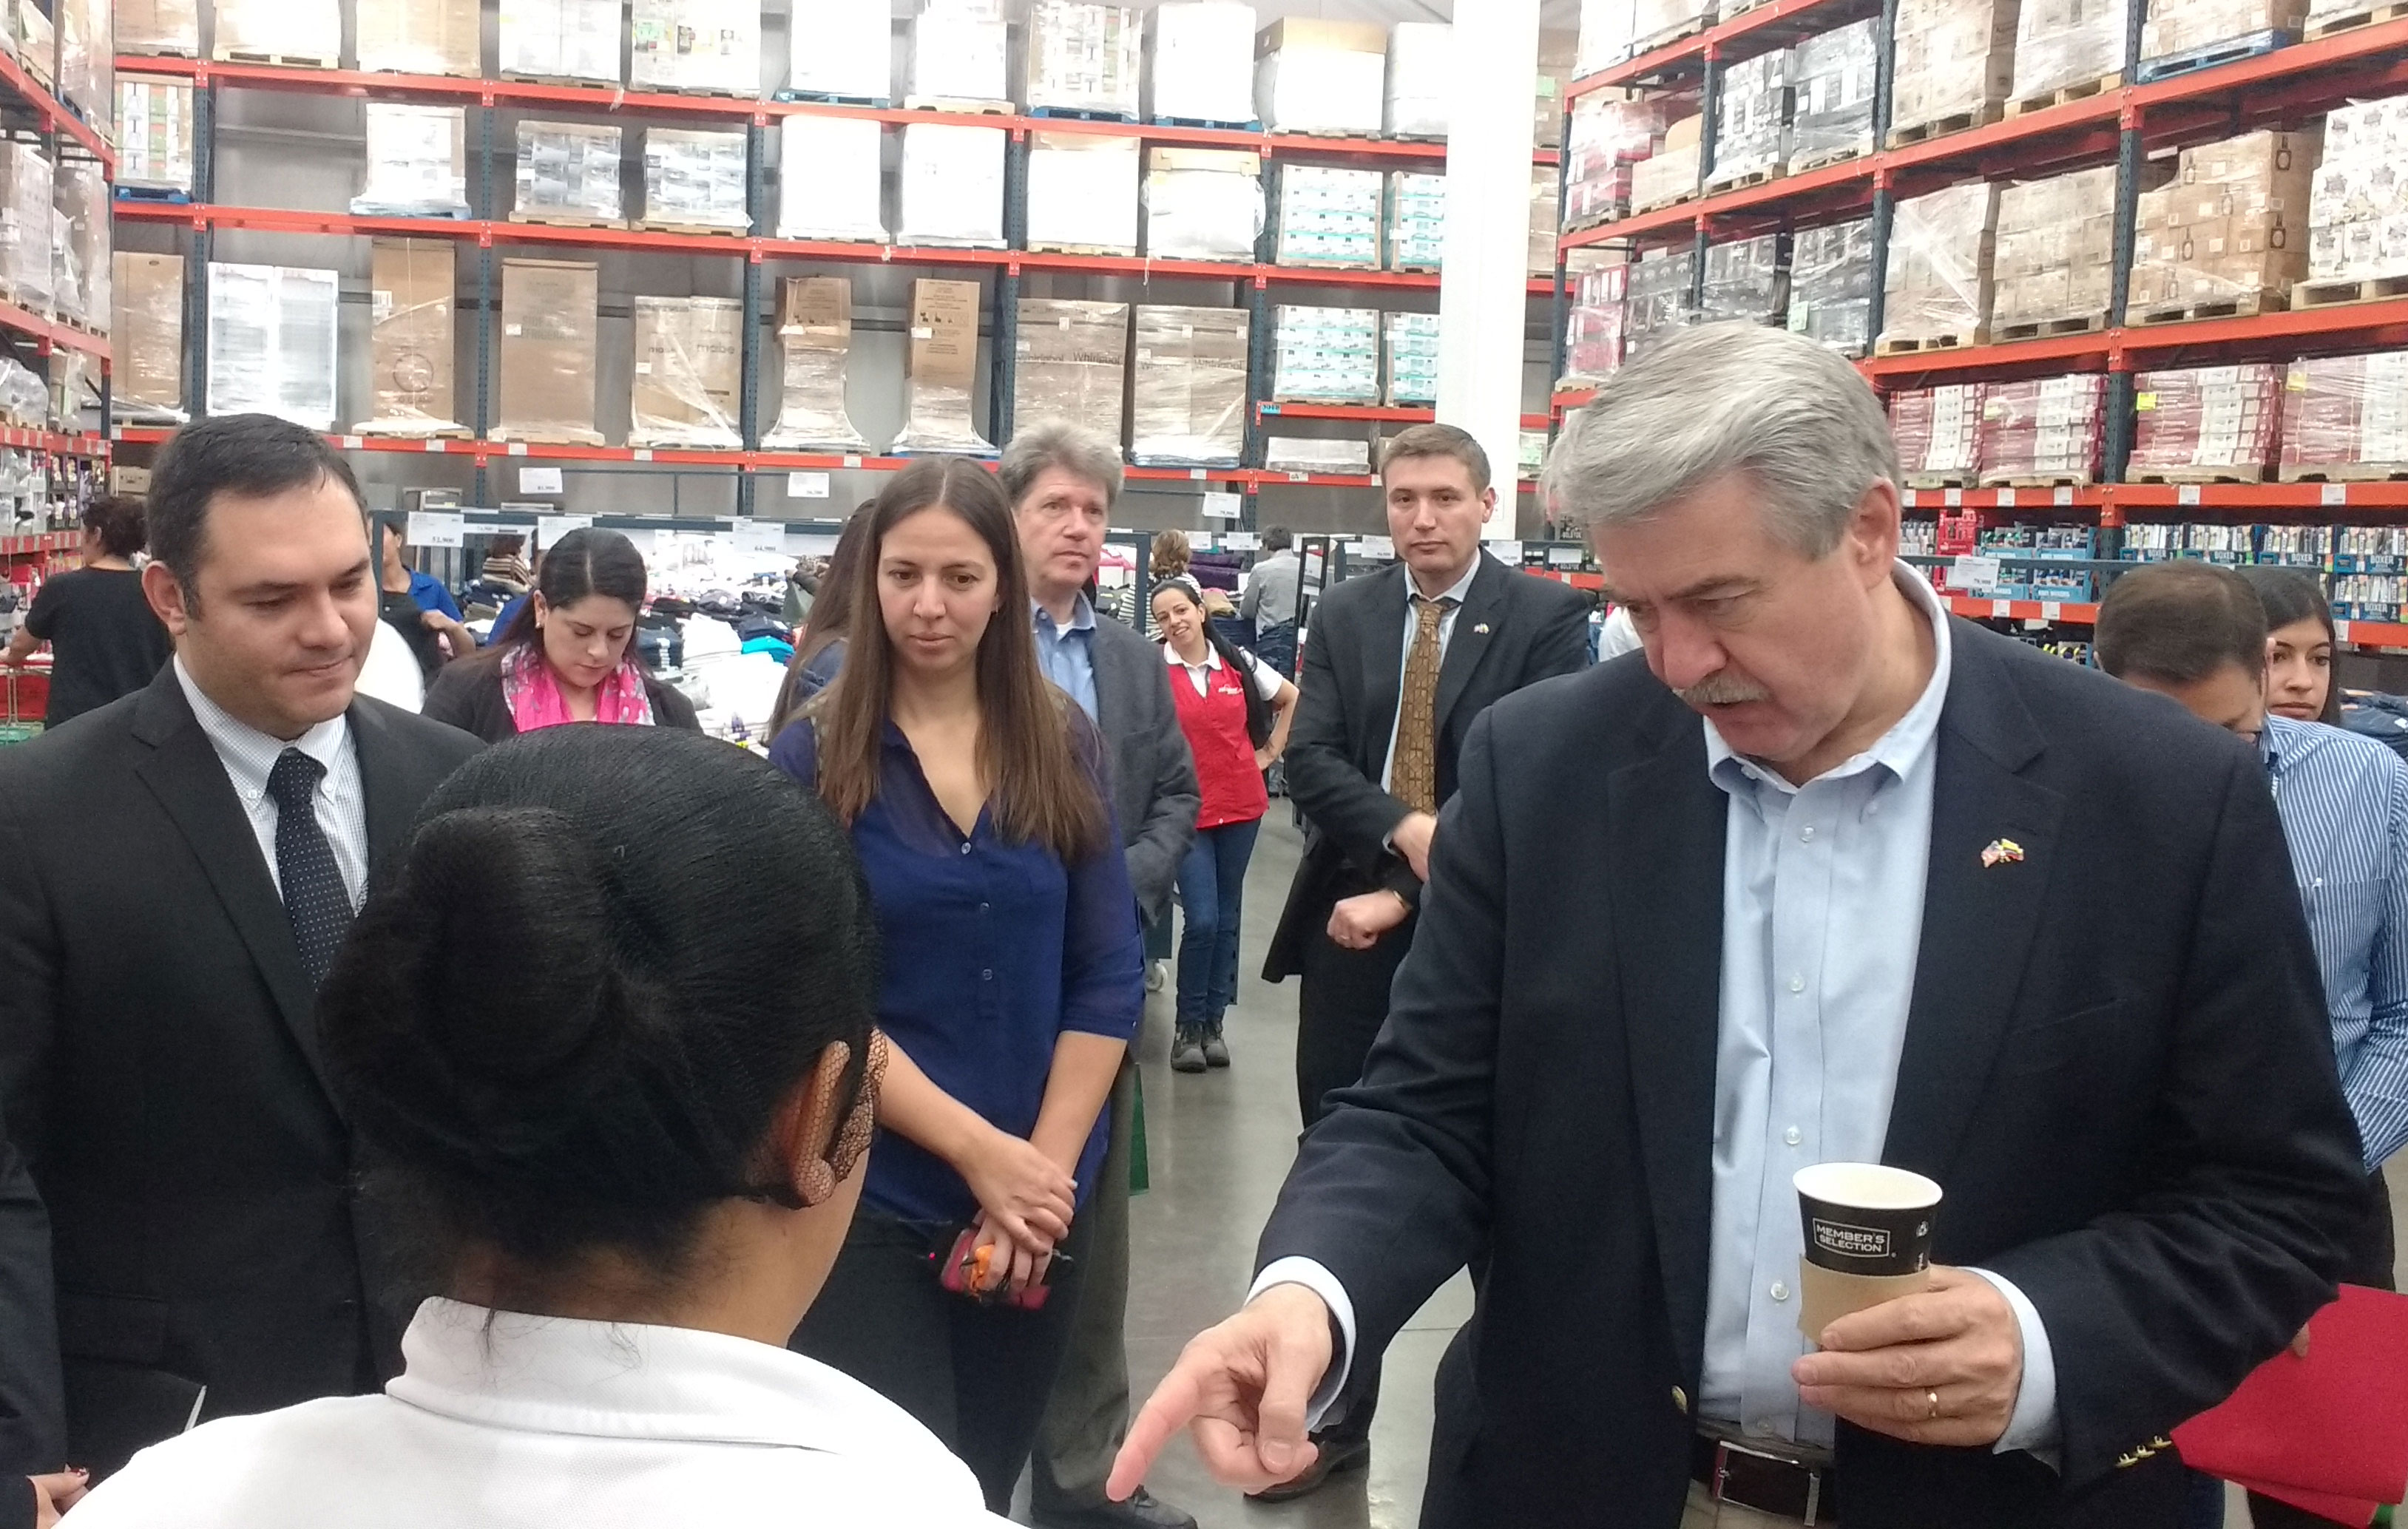 Group of people, including USDA Undersecretary for Trade Ted McKinney, shop at wholesale club store in Colombia